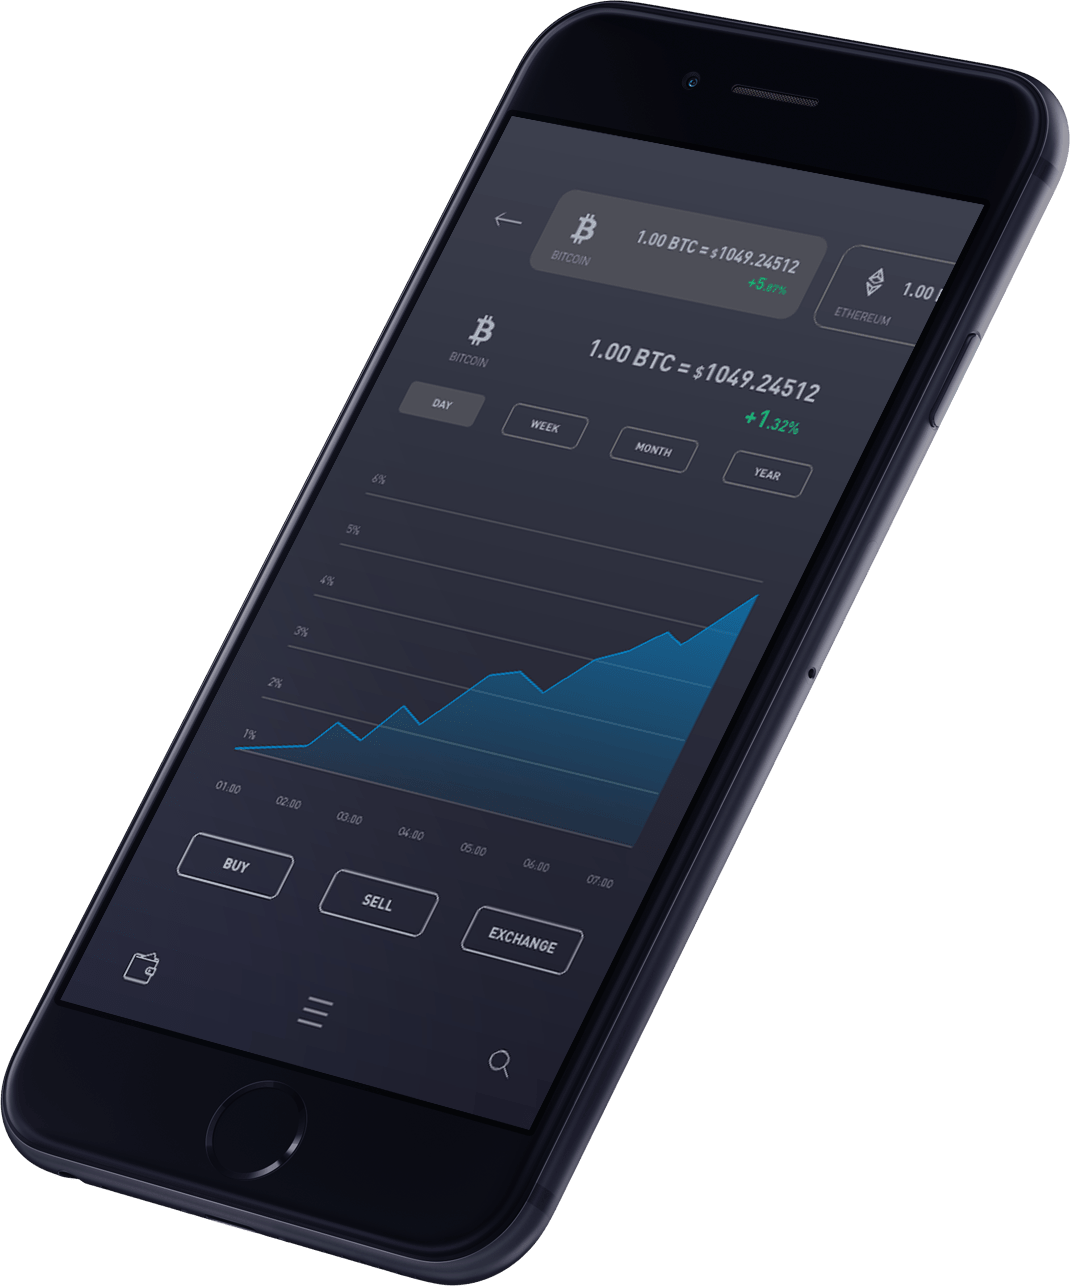 crypto-iphone-screen